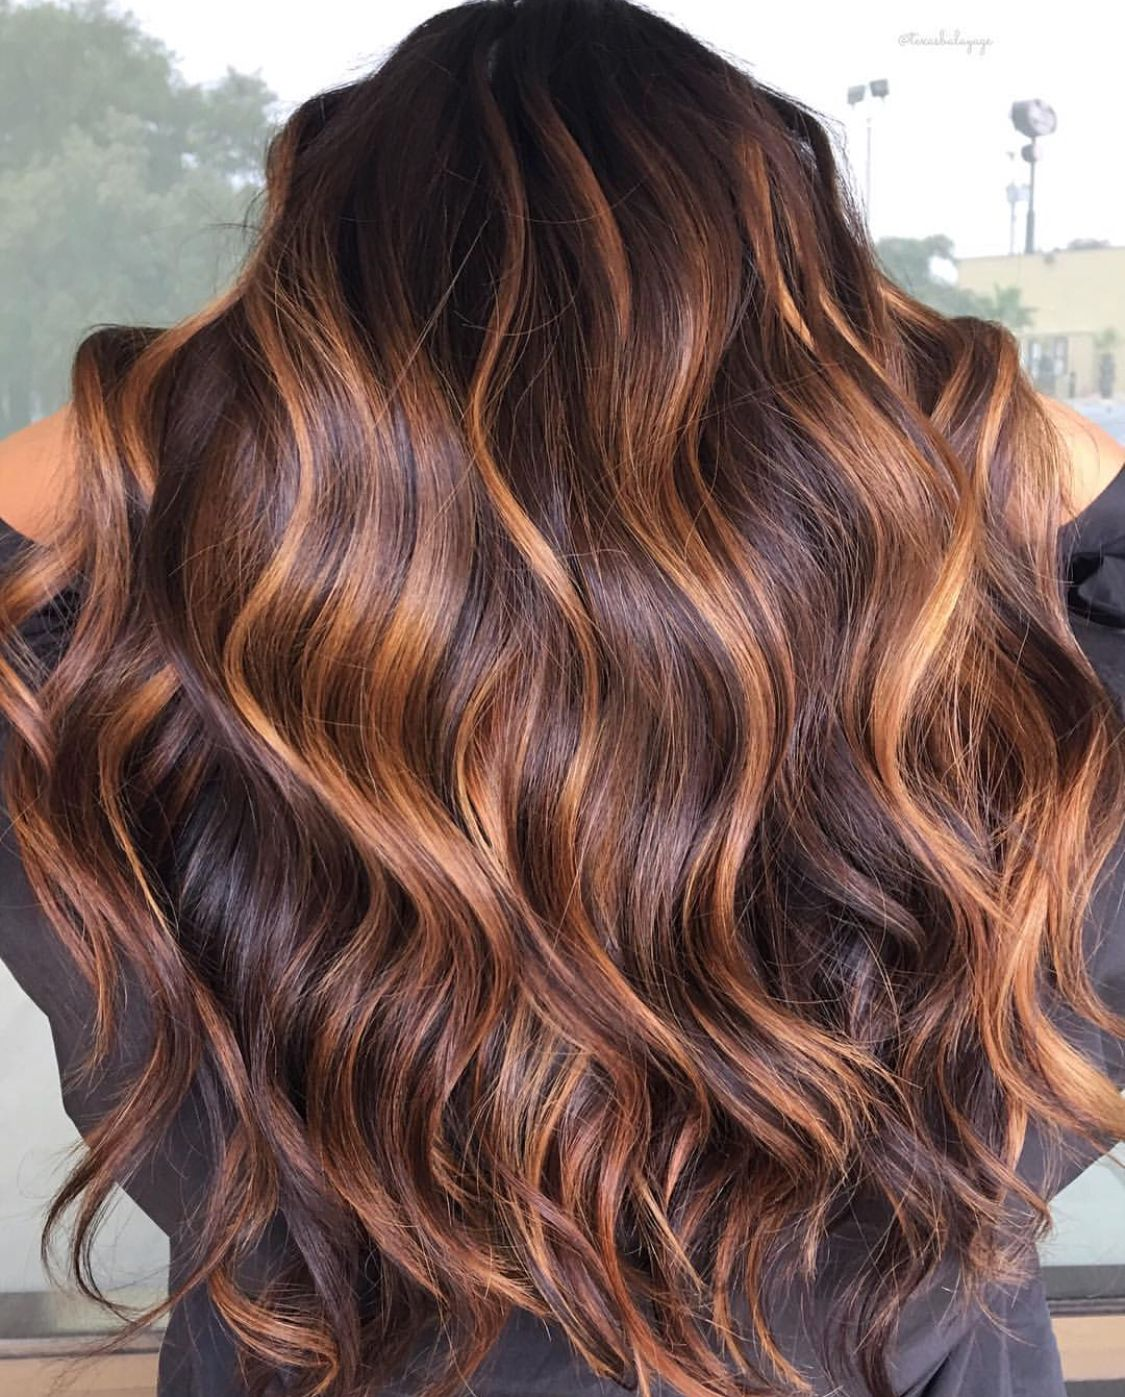 Fall Color Trend 68 Warm Balayage Looks Behindthechair Com Haircolor Fall Hair Color For Brunettes Brown Hair Balayage Brunette Hair Color